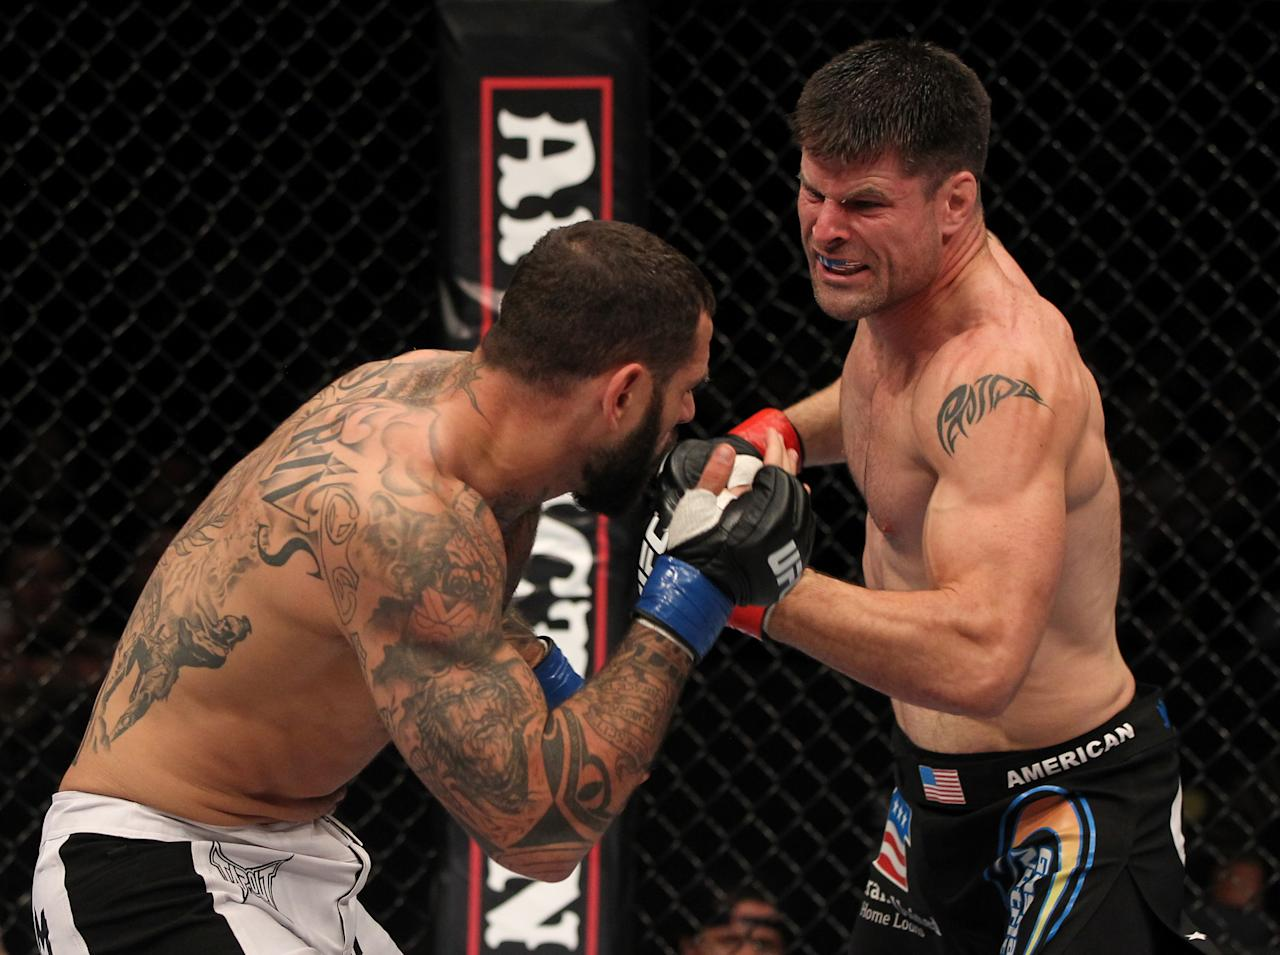 STOCKHOLM, SWEDEN - APRIL 14: (R-L) Brian Stann punches Alessio Sakara during their middleweight bout at the UFC on Fuel TV event at Ericsson Globe on April 14, 2012 in Stockholm, Sweden. (Photo by Josh Hedges/Zuffa LLC/Zuffa LLC via Getty Images)